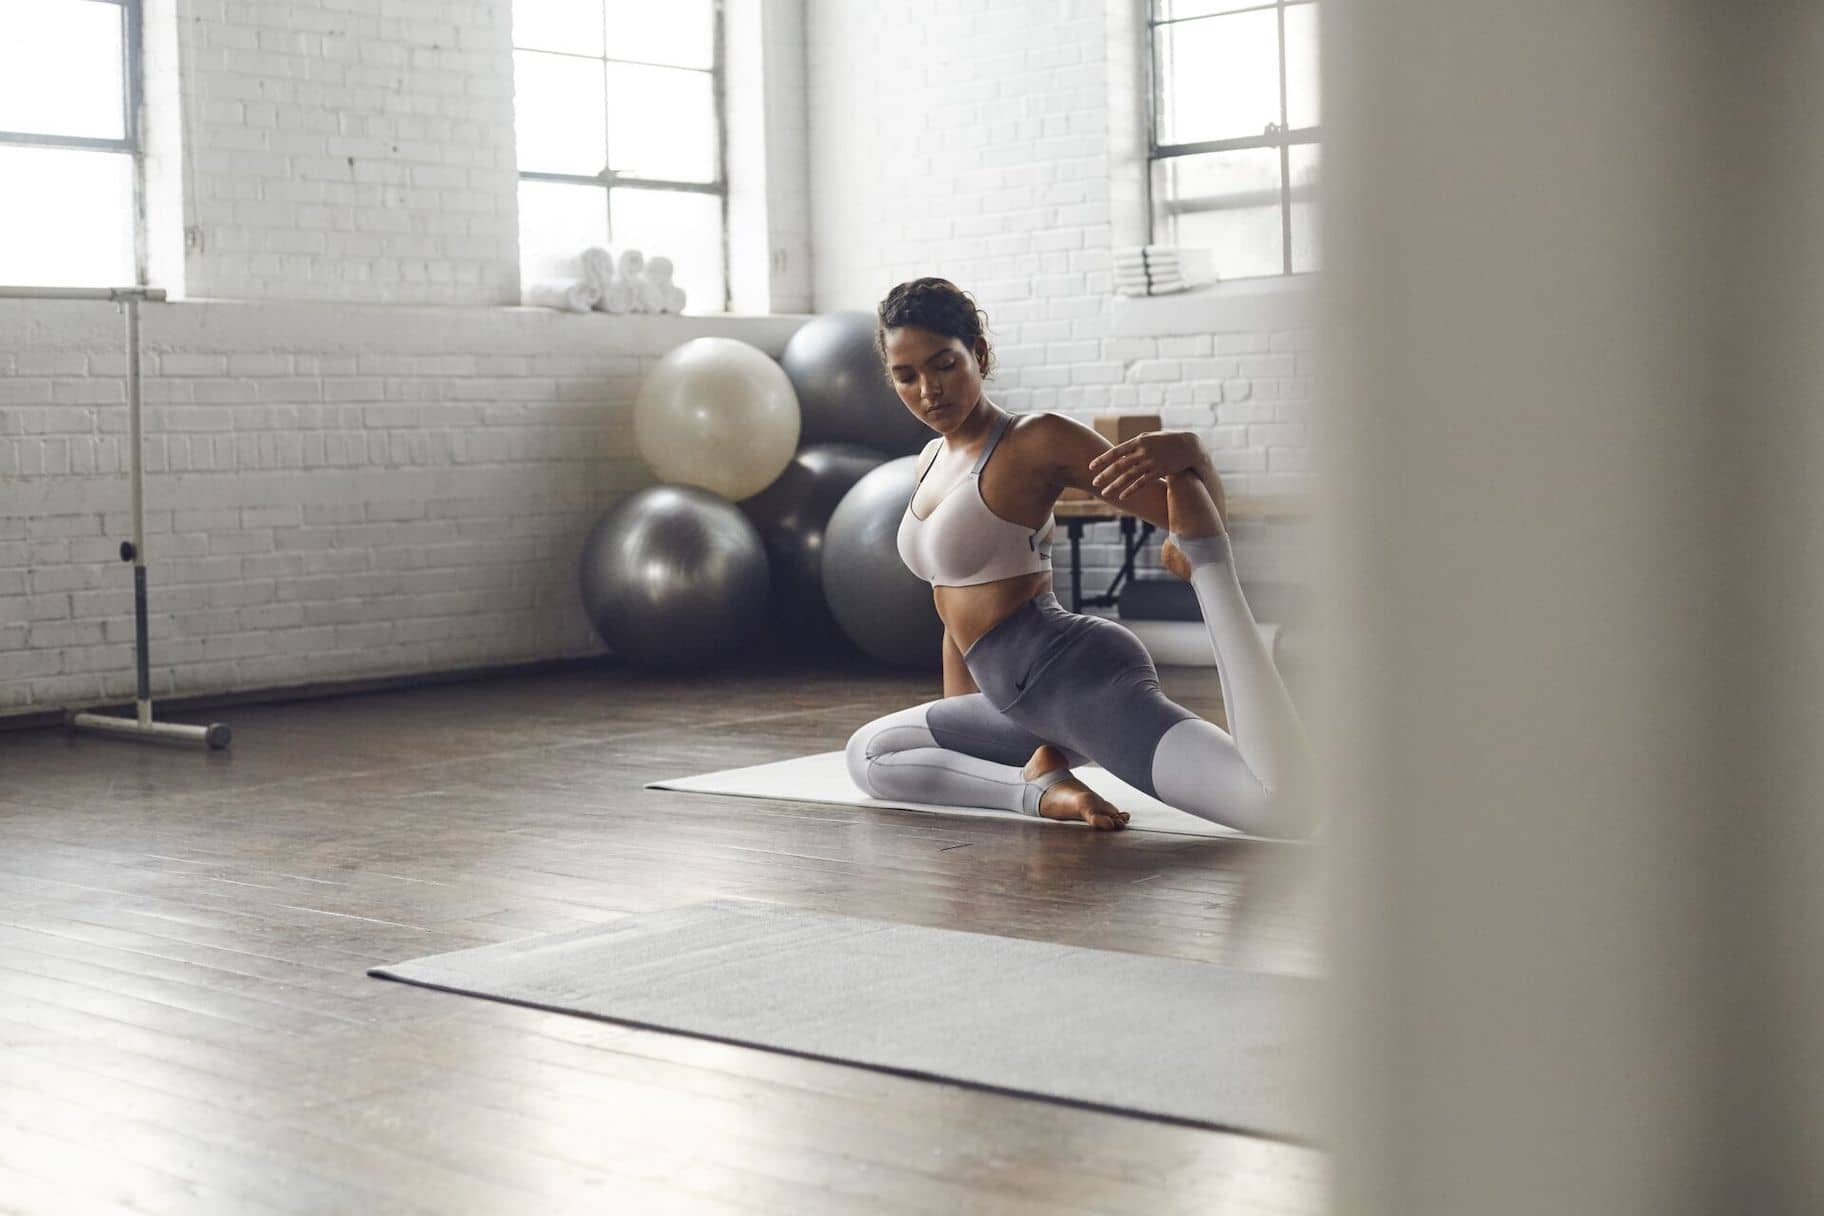 Choosing Clothing for Hot Yoga: Tips to Stay Cool and Comfortable